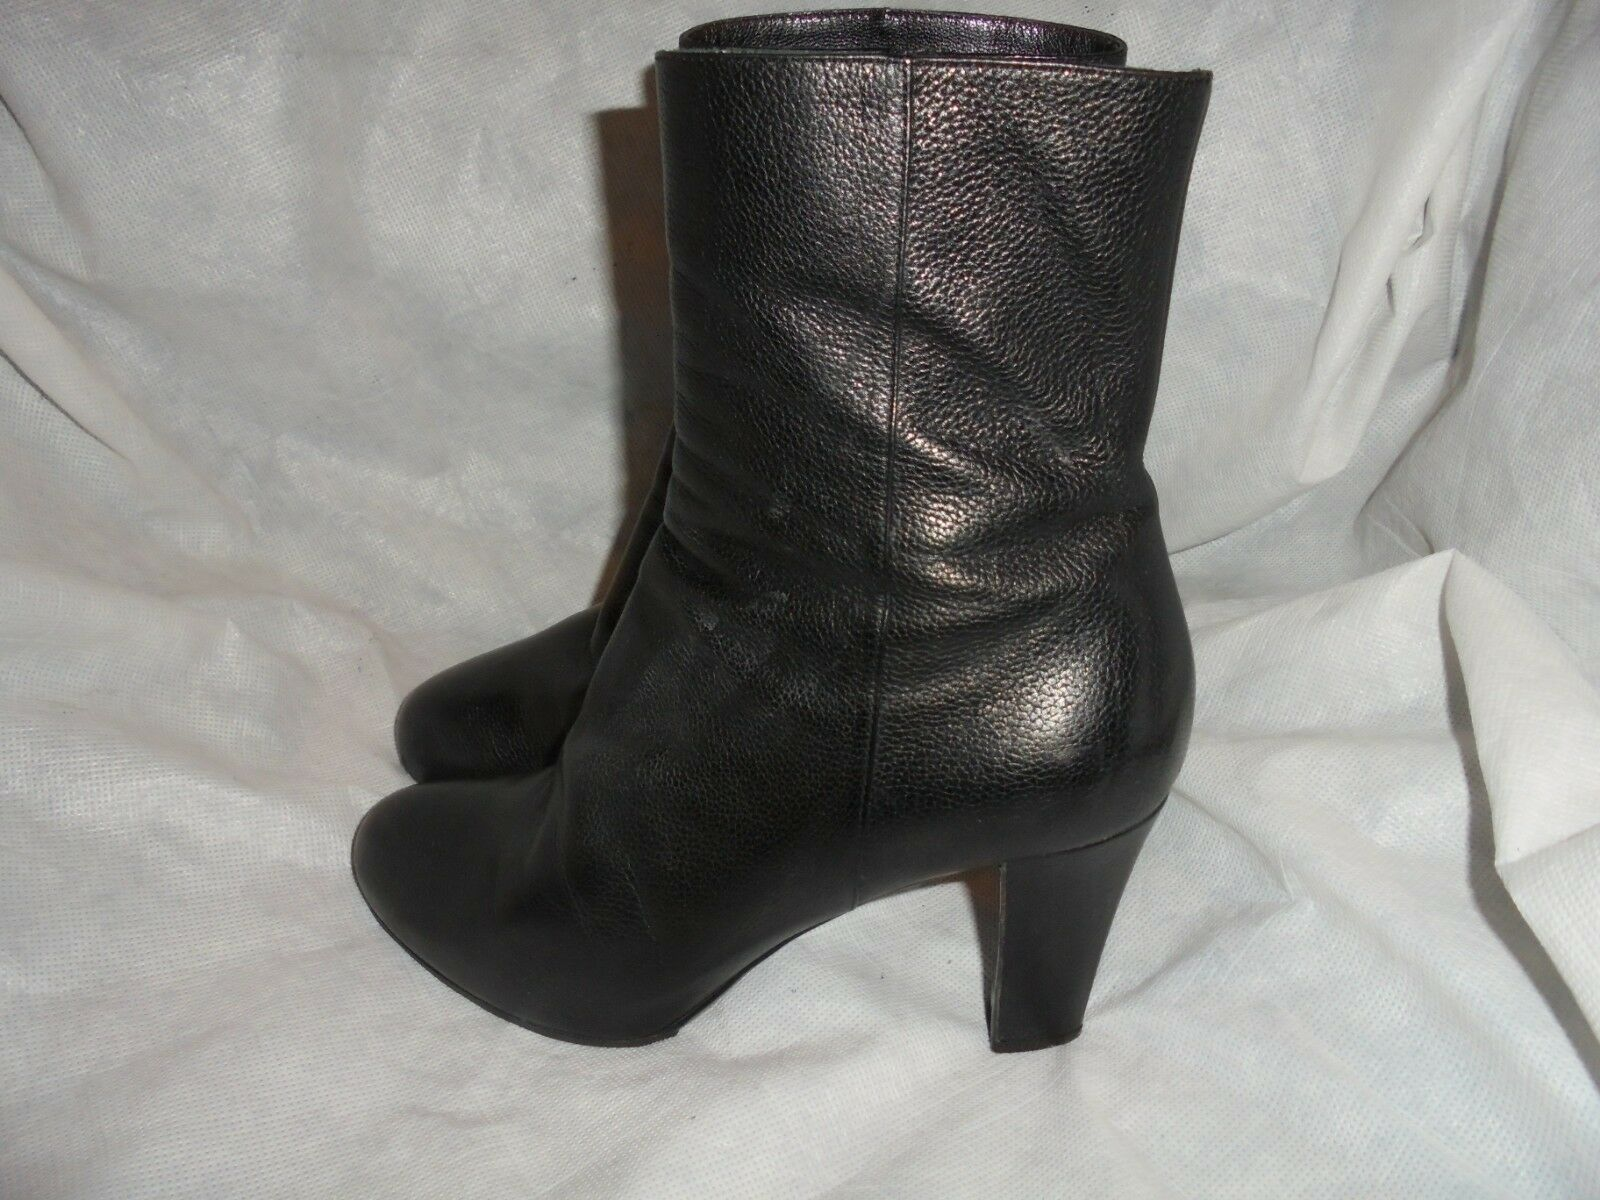 SERGIO ROSSI WOMEN'S BLACK LEATHER ZIP UP ANKLE BOOT SIZE UK 5.5 EU 38.5 VGC